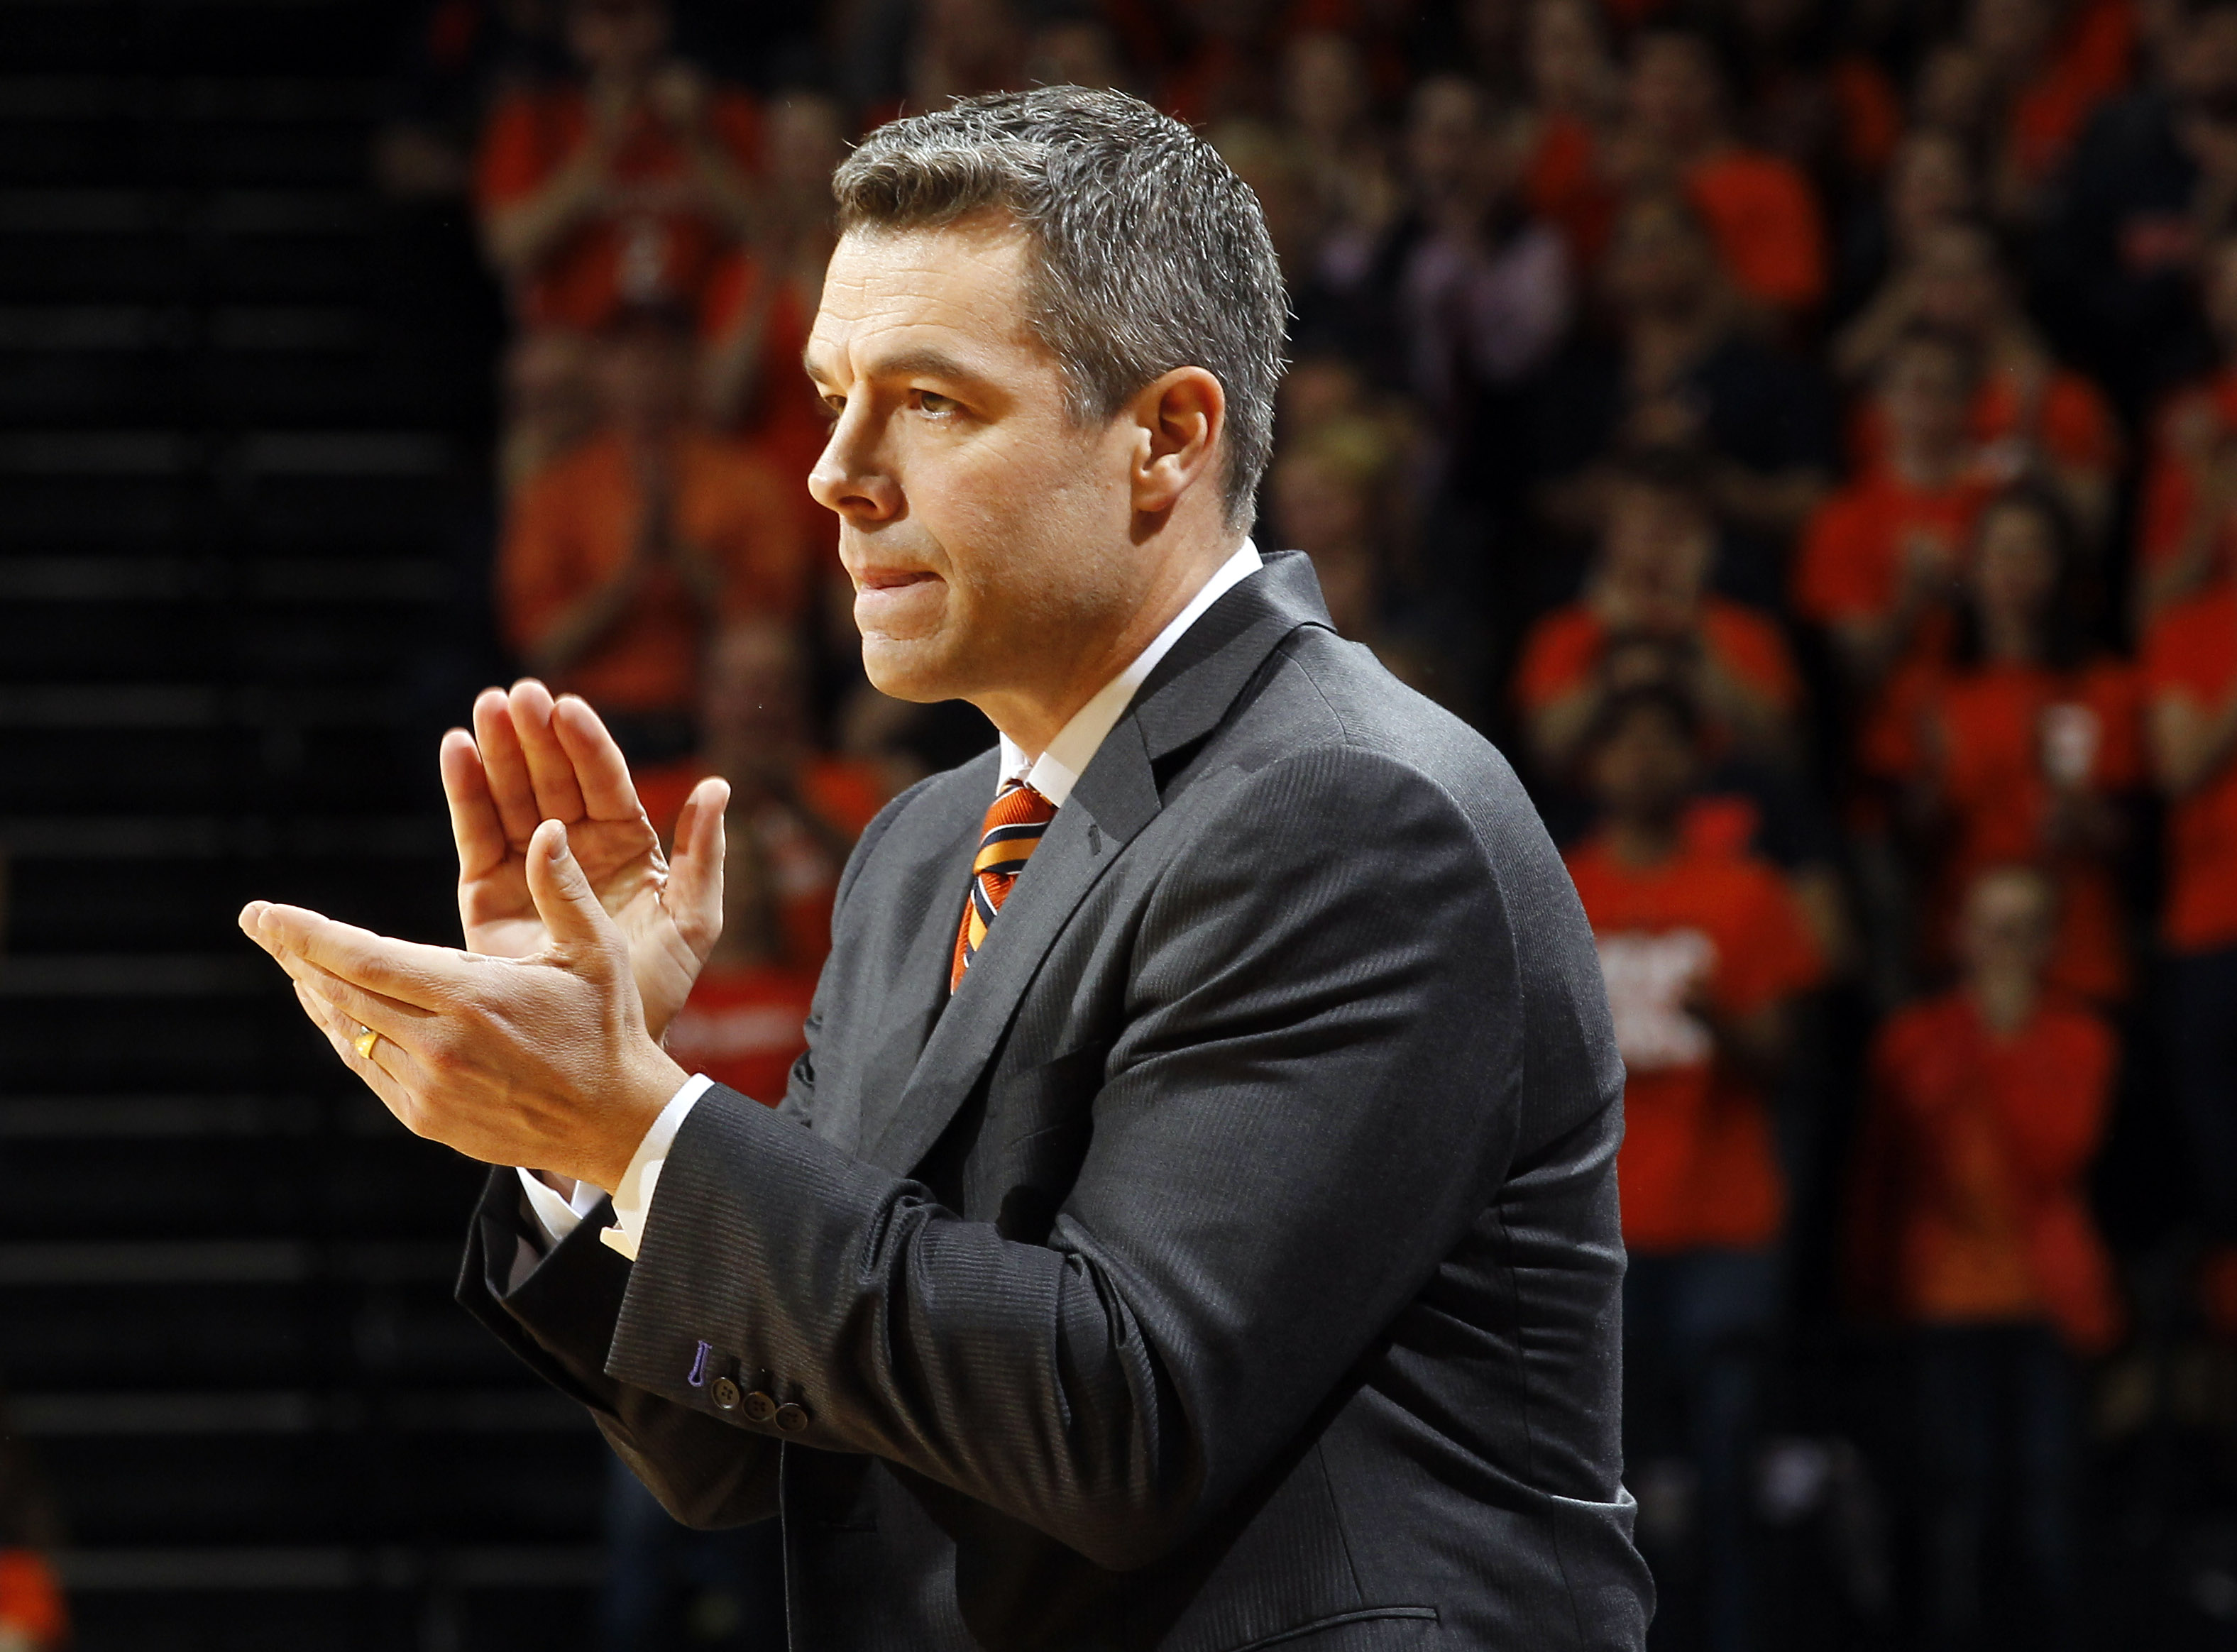 Virginia head coach Tony Bennett reacts to a play during an NCAA college basketball game against Notre Dame Saturday, Jan. 2, 2016, in Charlottesville, Va. (AP Photo/Andrew Shurtleff)